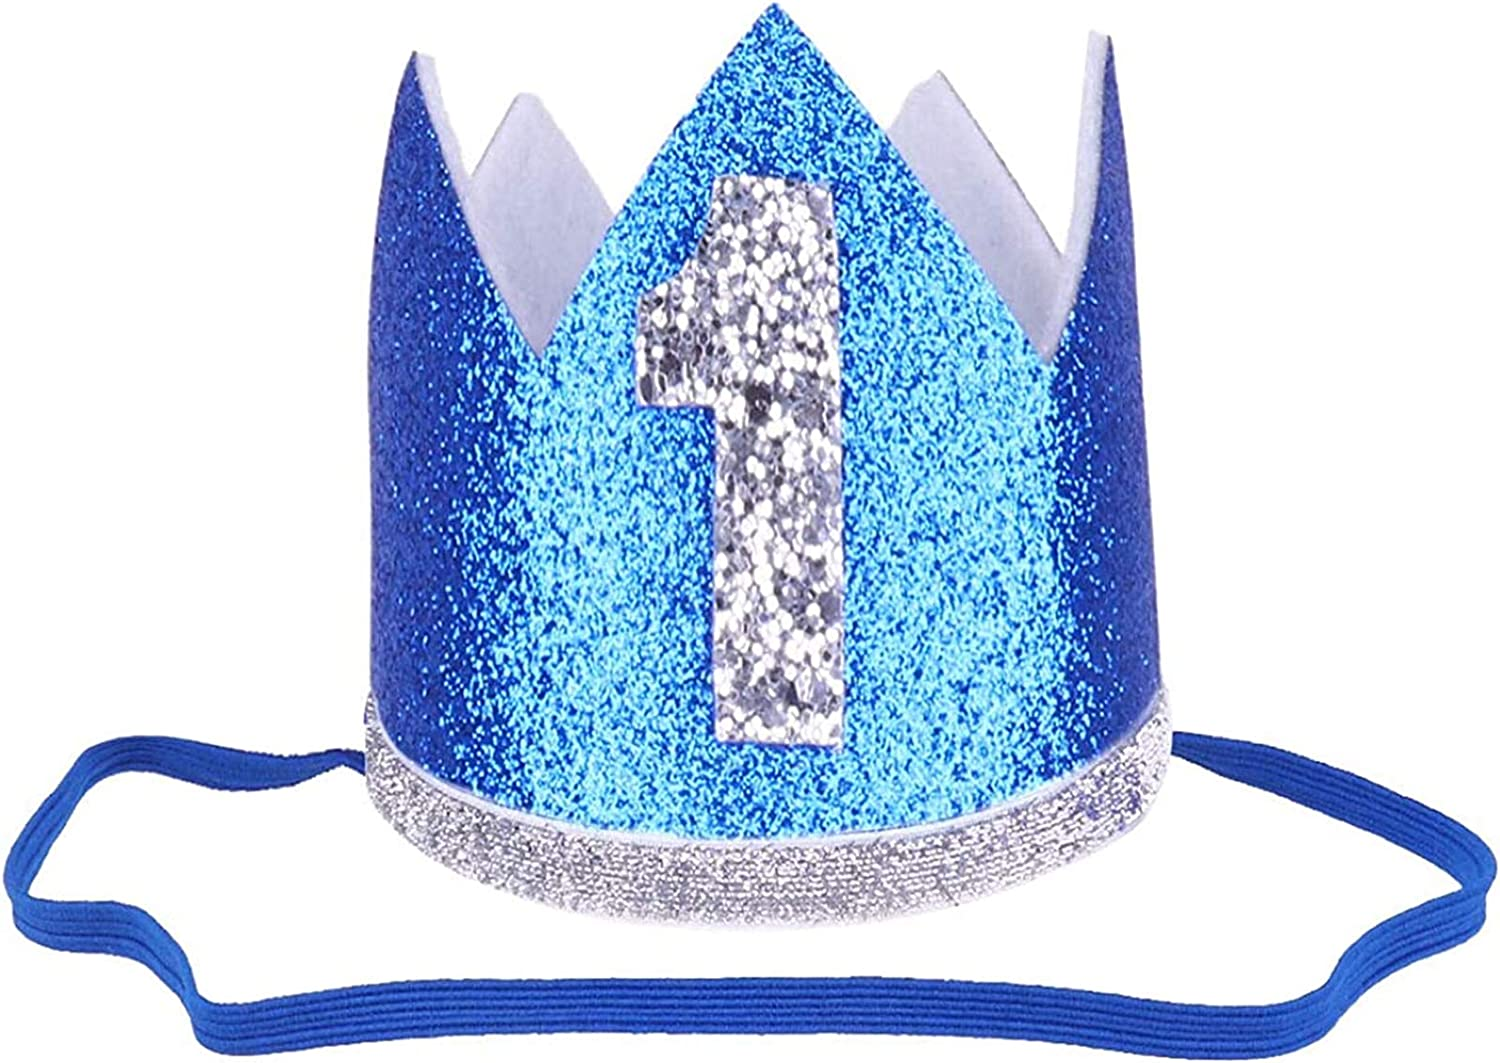 KKmeter Baby Boy Girls 1 Year Old 1st Birthday Crown Hat Prince Party Supplies Favors Headband Costume Photo shoot